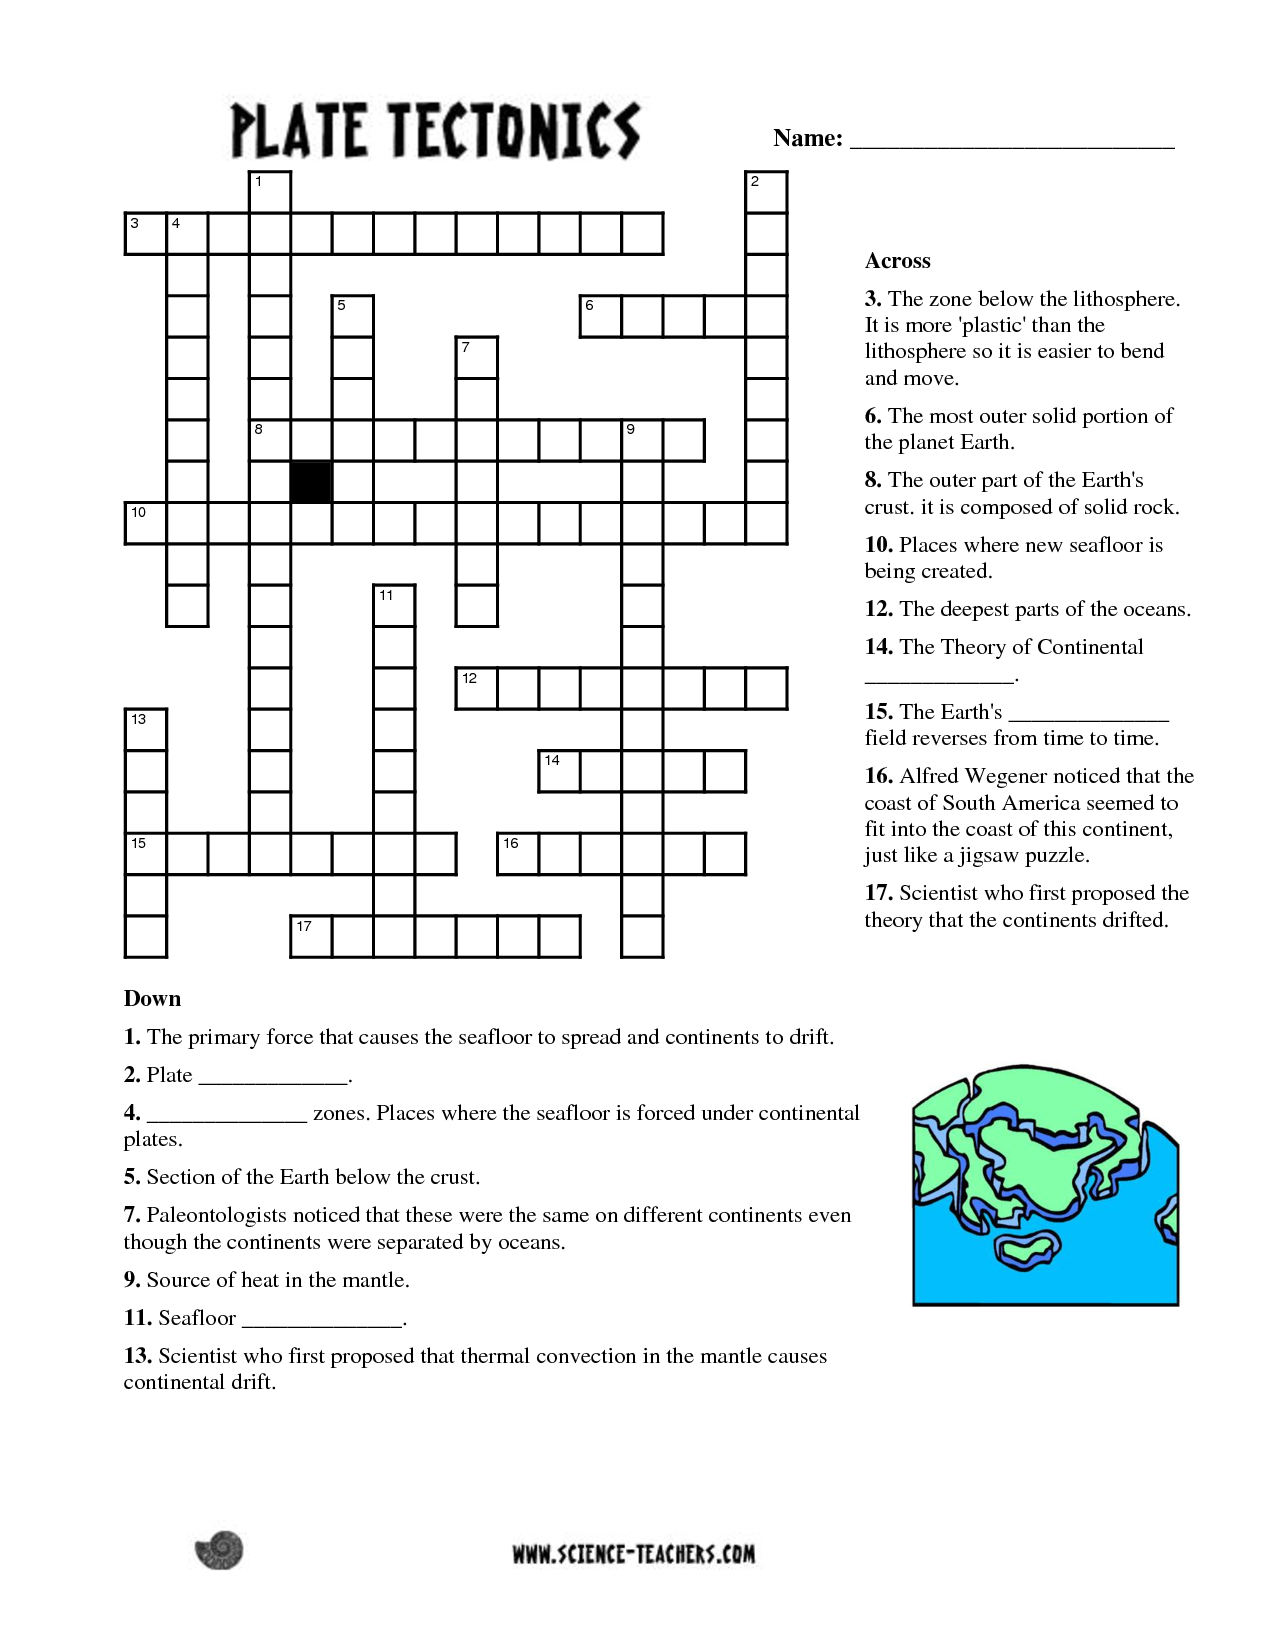 Planets Crossword Puzzle Worksheet - Pics About Space | Fun Science - Free Printable Science Crossword Puzzles